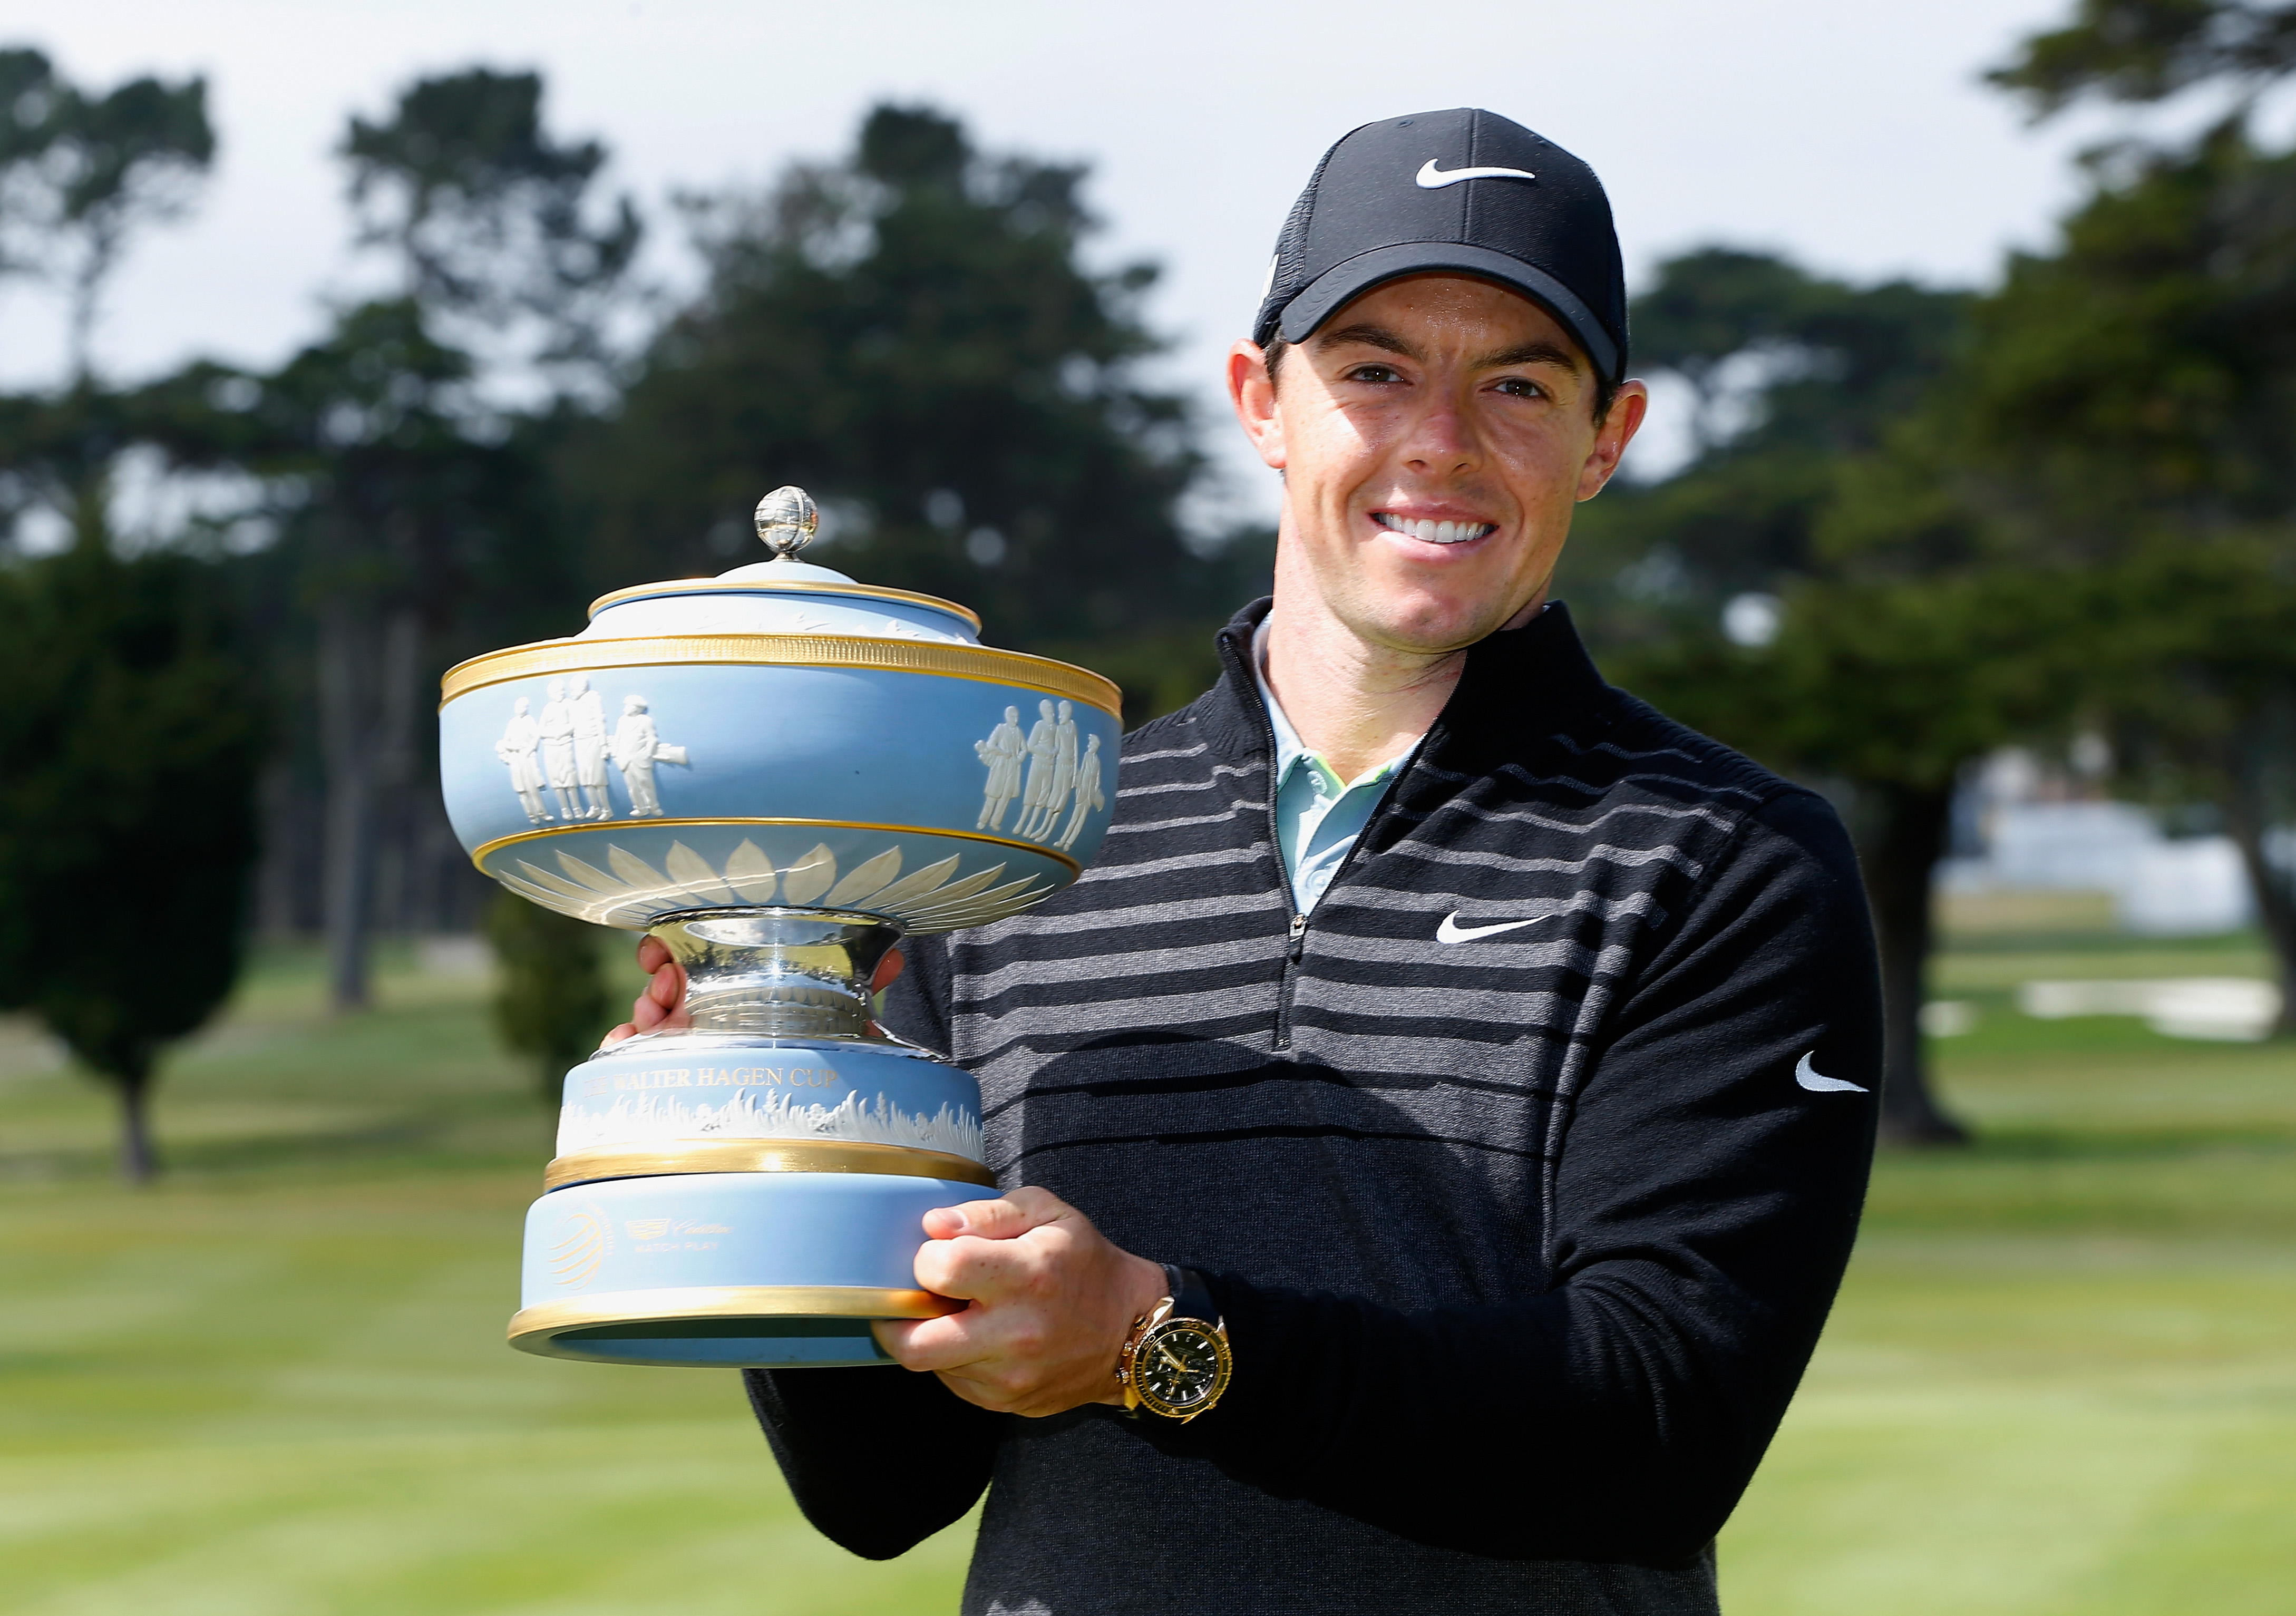 The Match Play win was McIlroy's 10th on the PGA Tour (Photo: Getty Images)